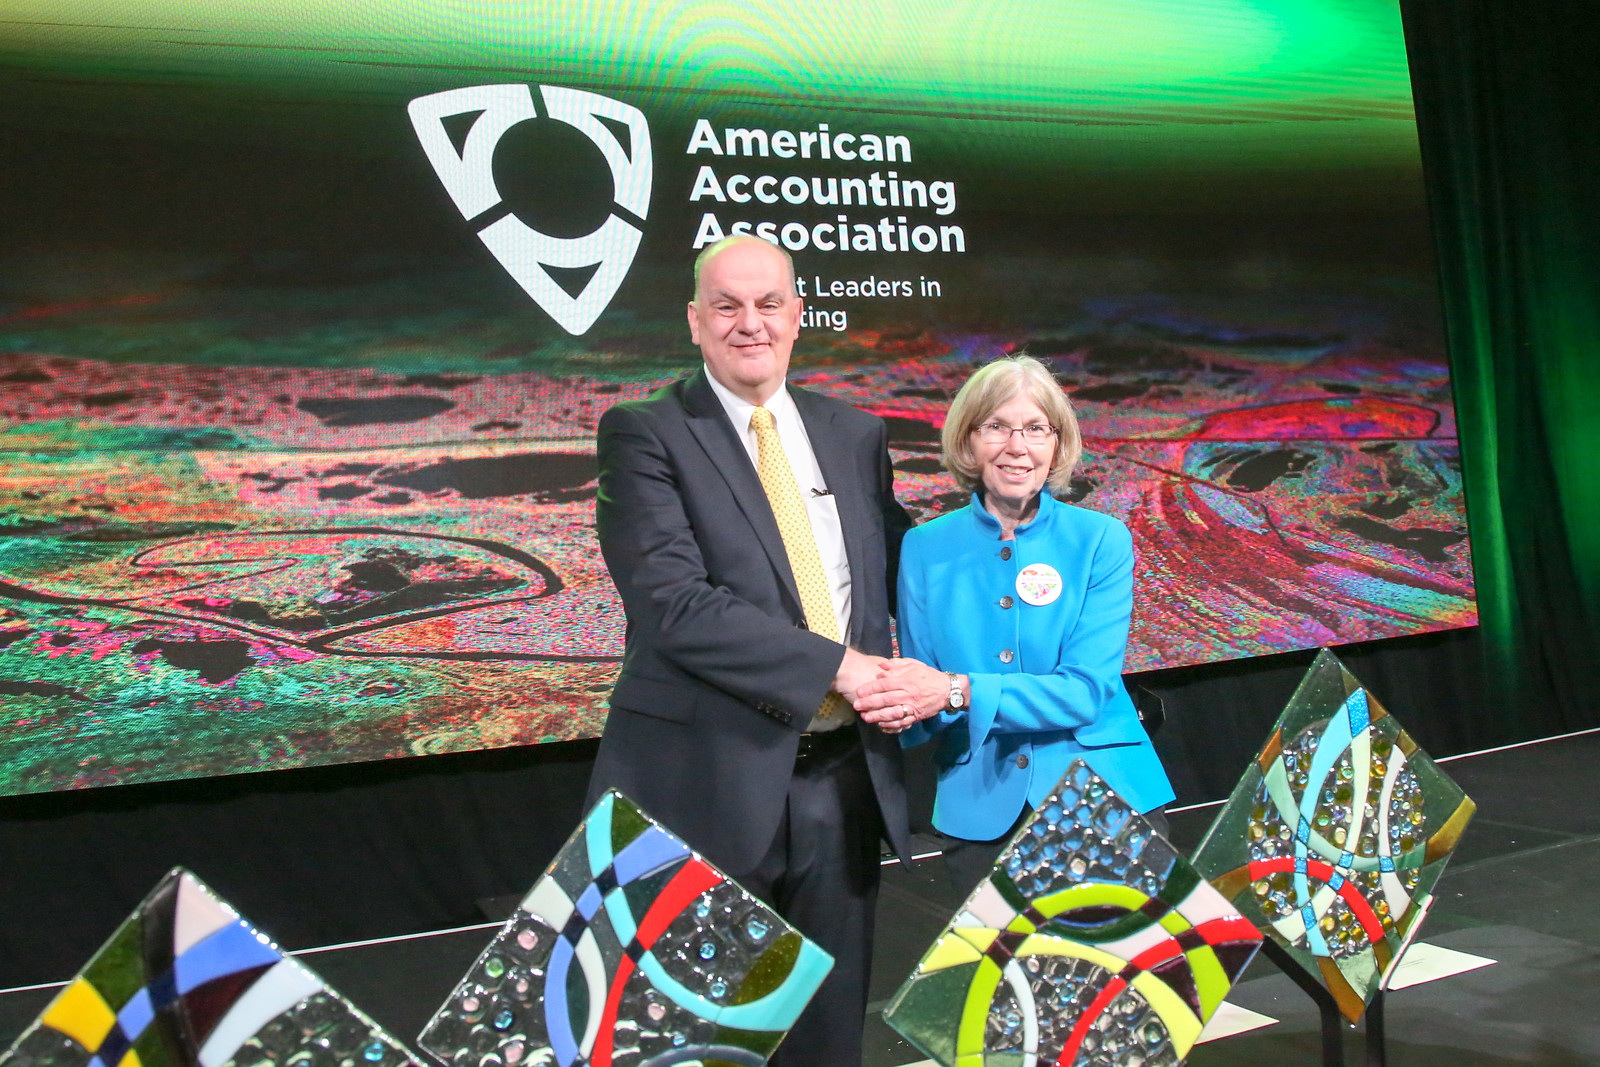 American Accounting Association Recognizes Guido Geerts